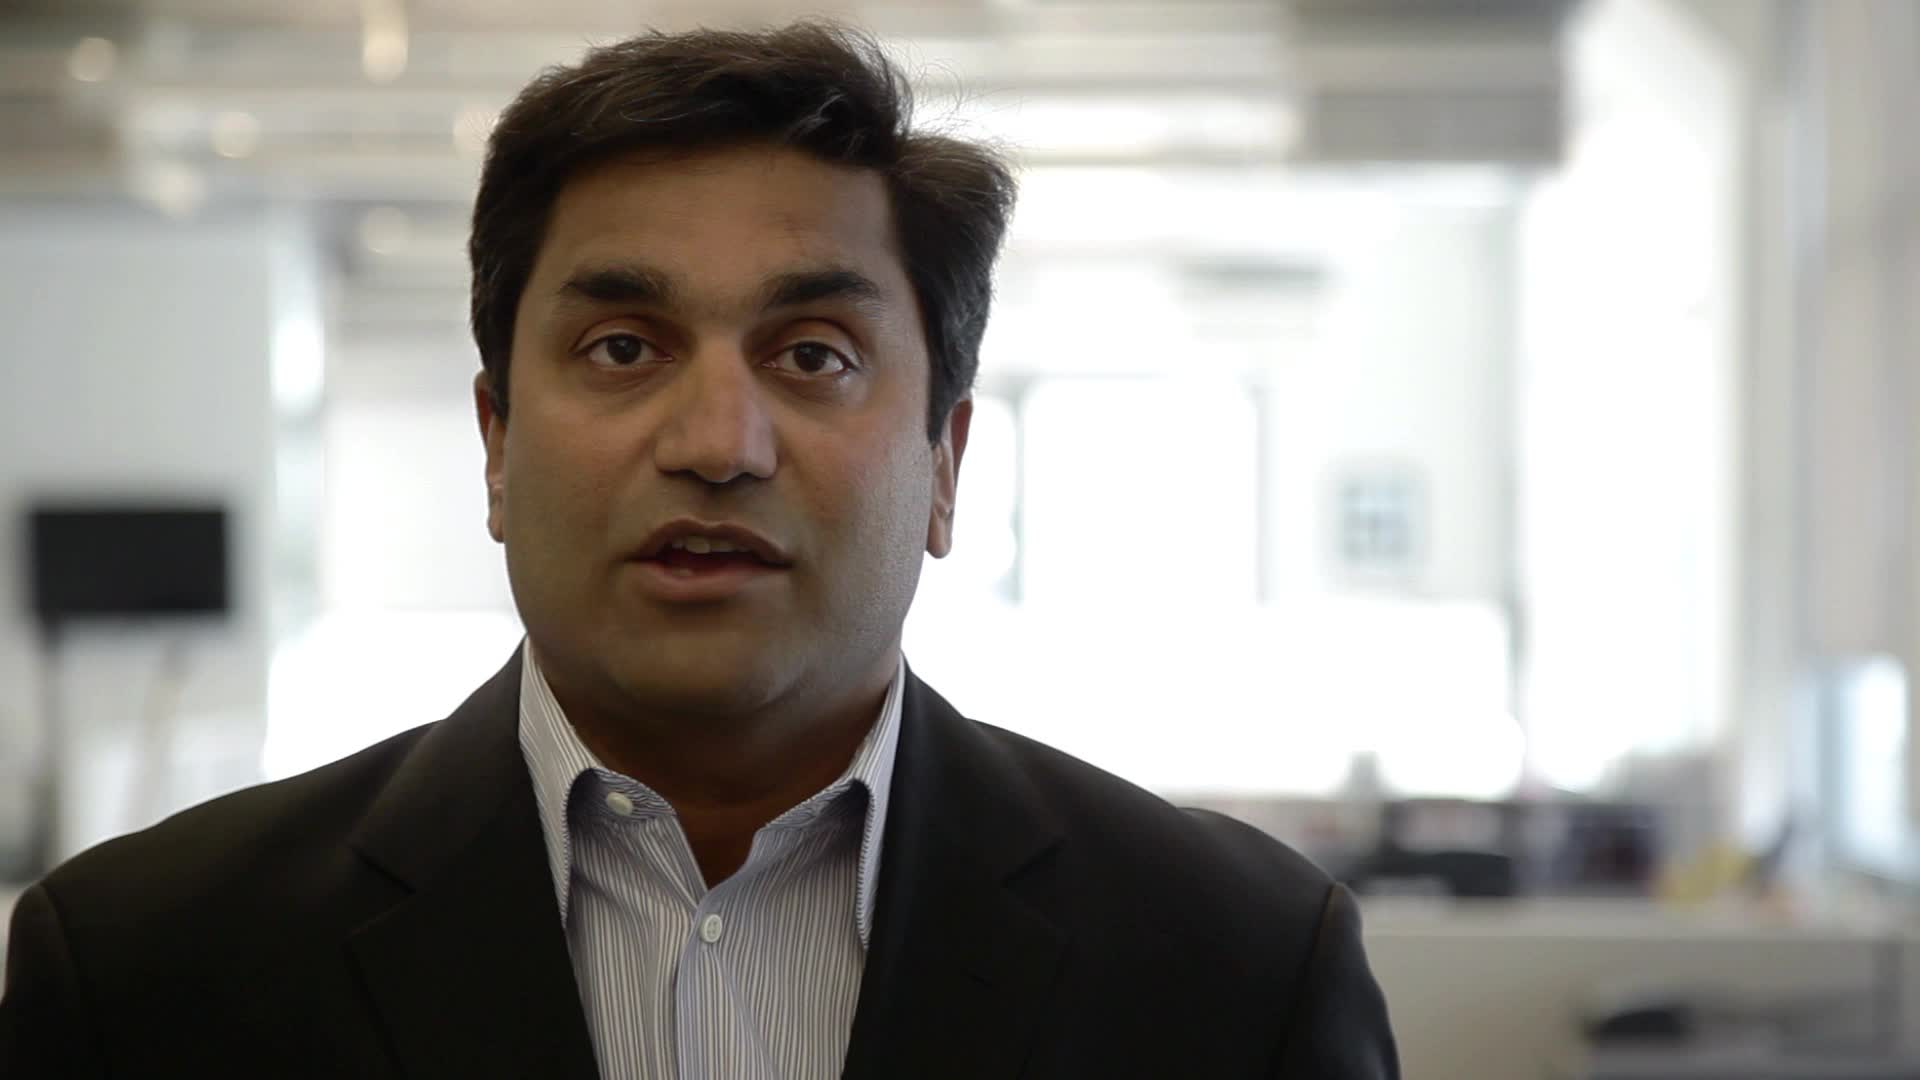 PR Newswire CEO Ninan Chacko announces industry-leading policies for market-moving news distribution.